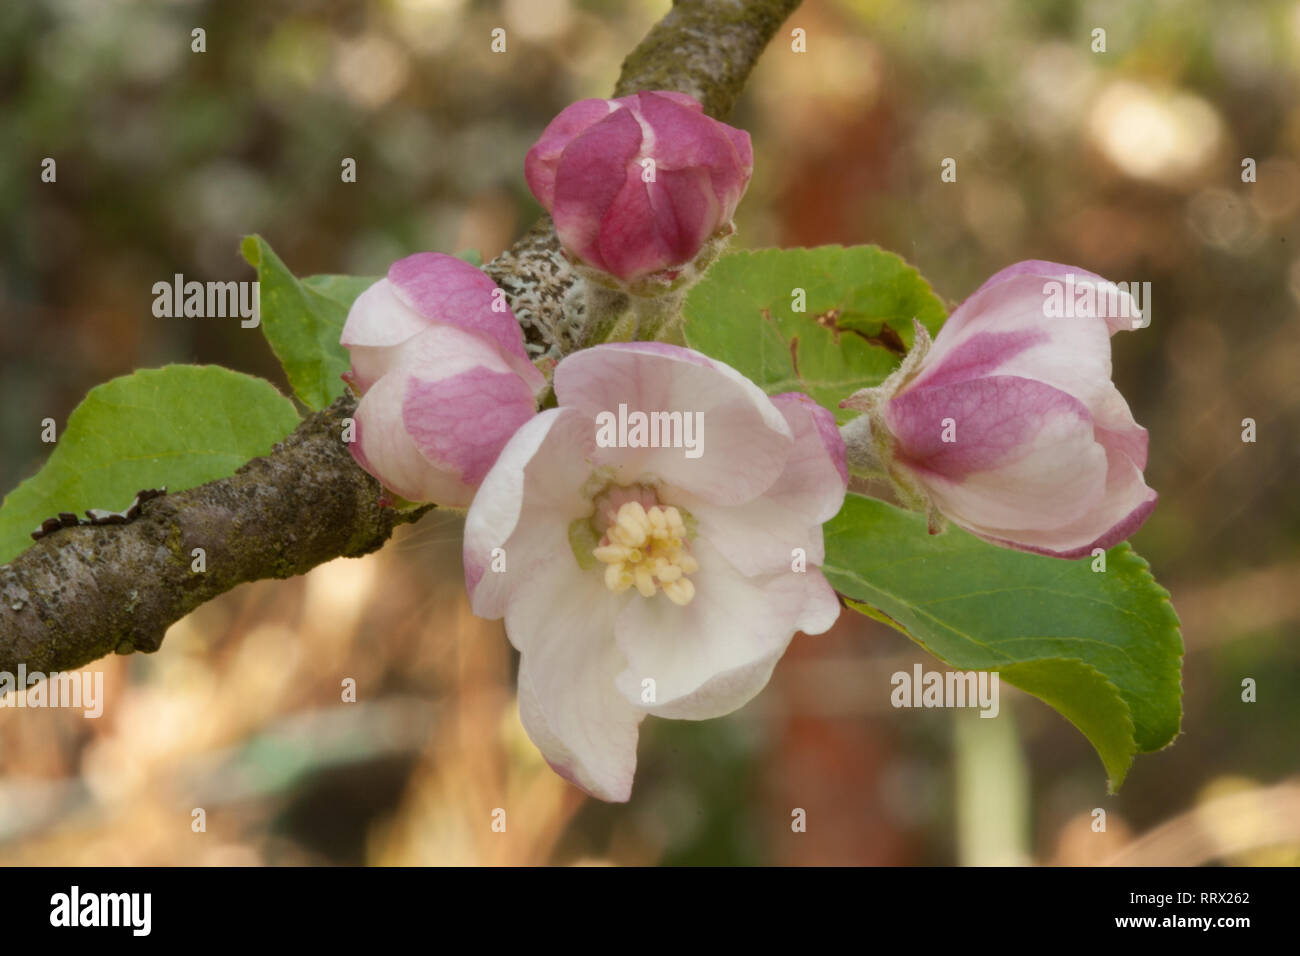 Apple pink flowers with buds ready to bloom stamens and poles - Stock Image